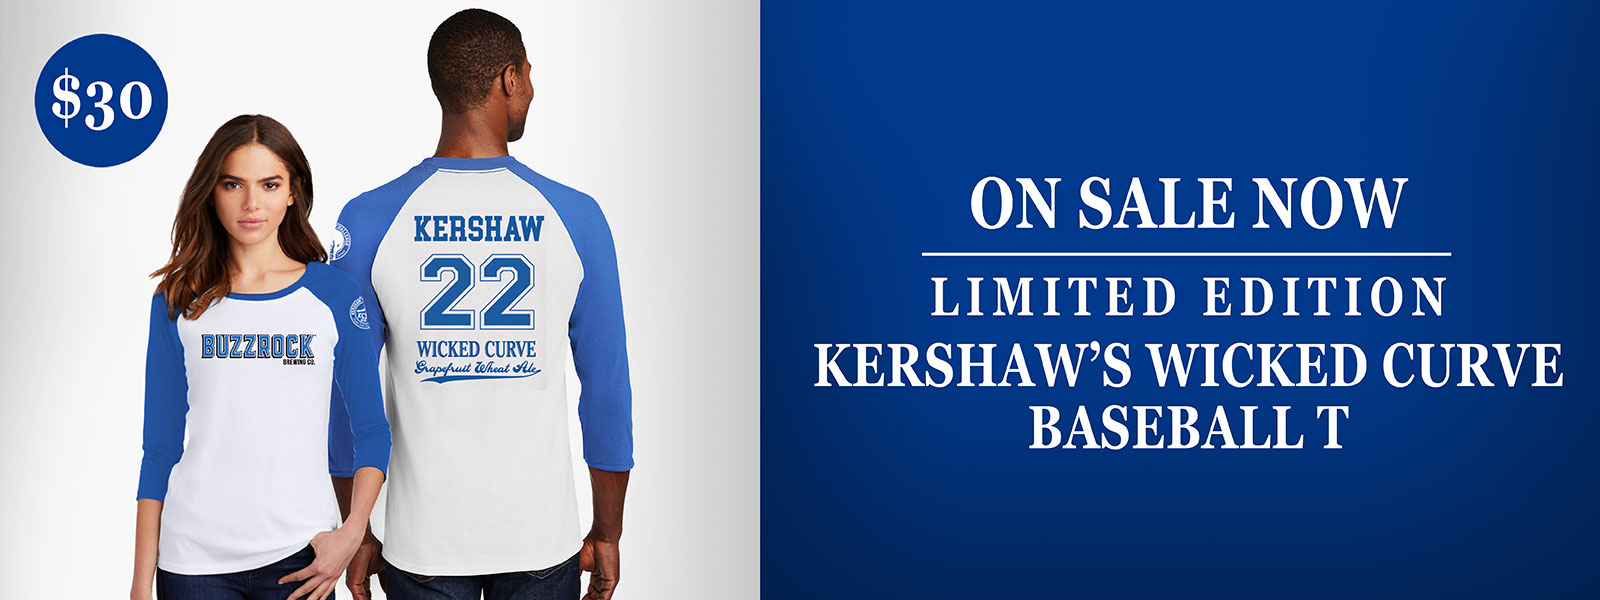 Kershaw's Wicked Curve Limited Edition Baseball T - on sale now!